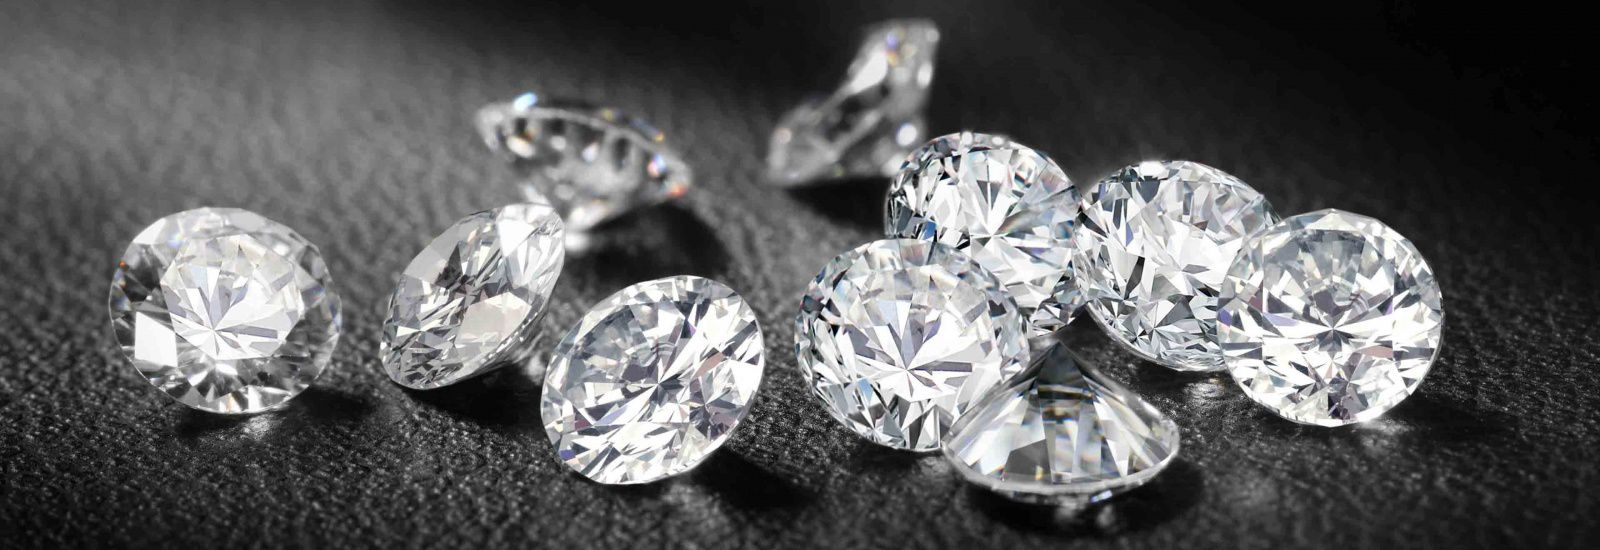 Certified Diamonds Perth